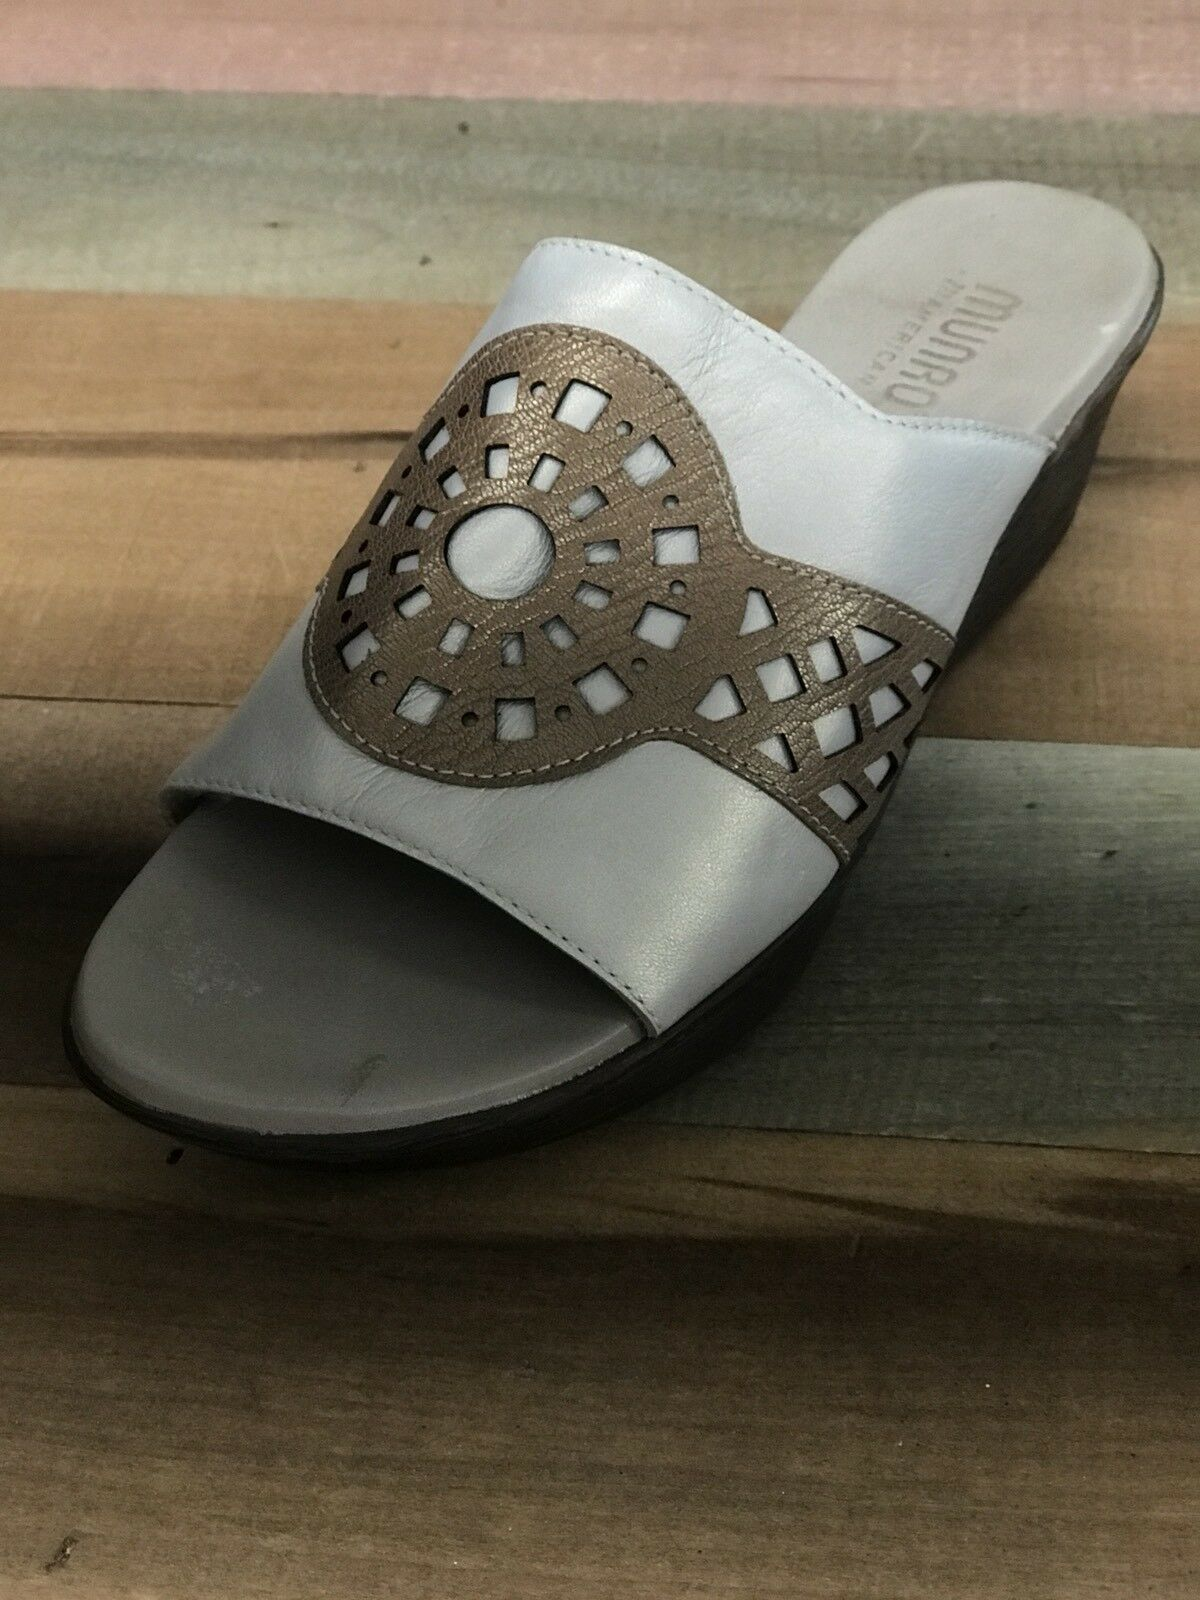 Munro American Women's Leather Wedge Sandal Size US 9.5 Made in USA